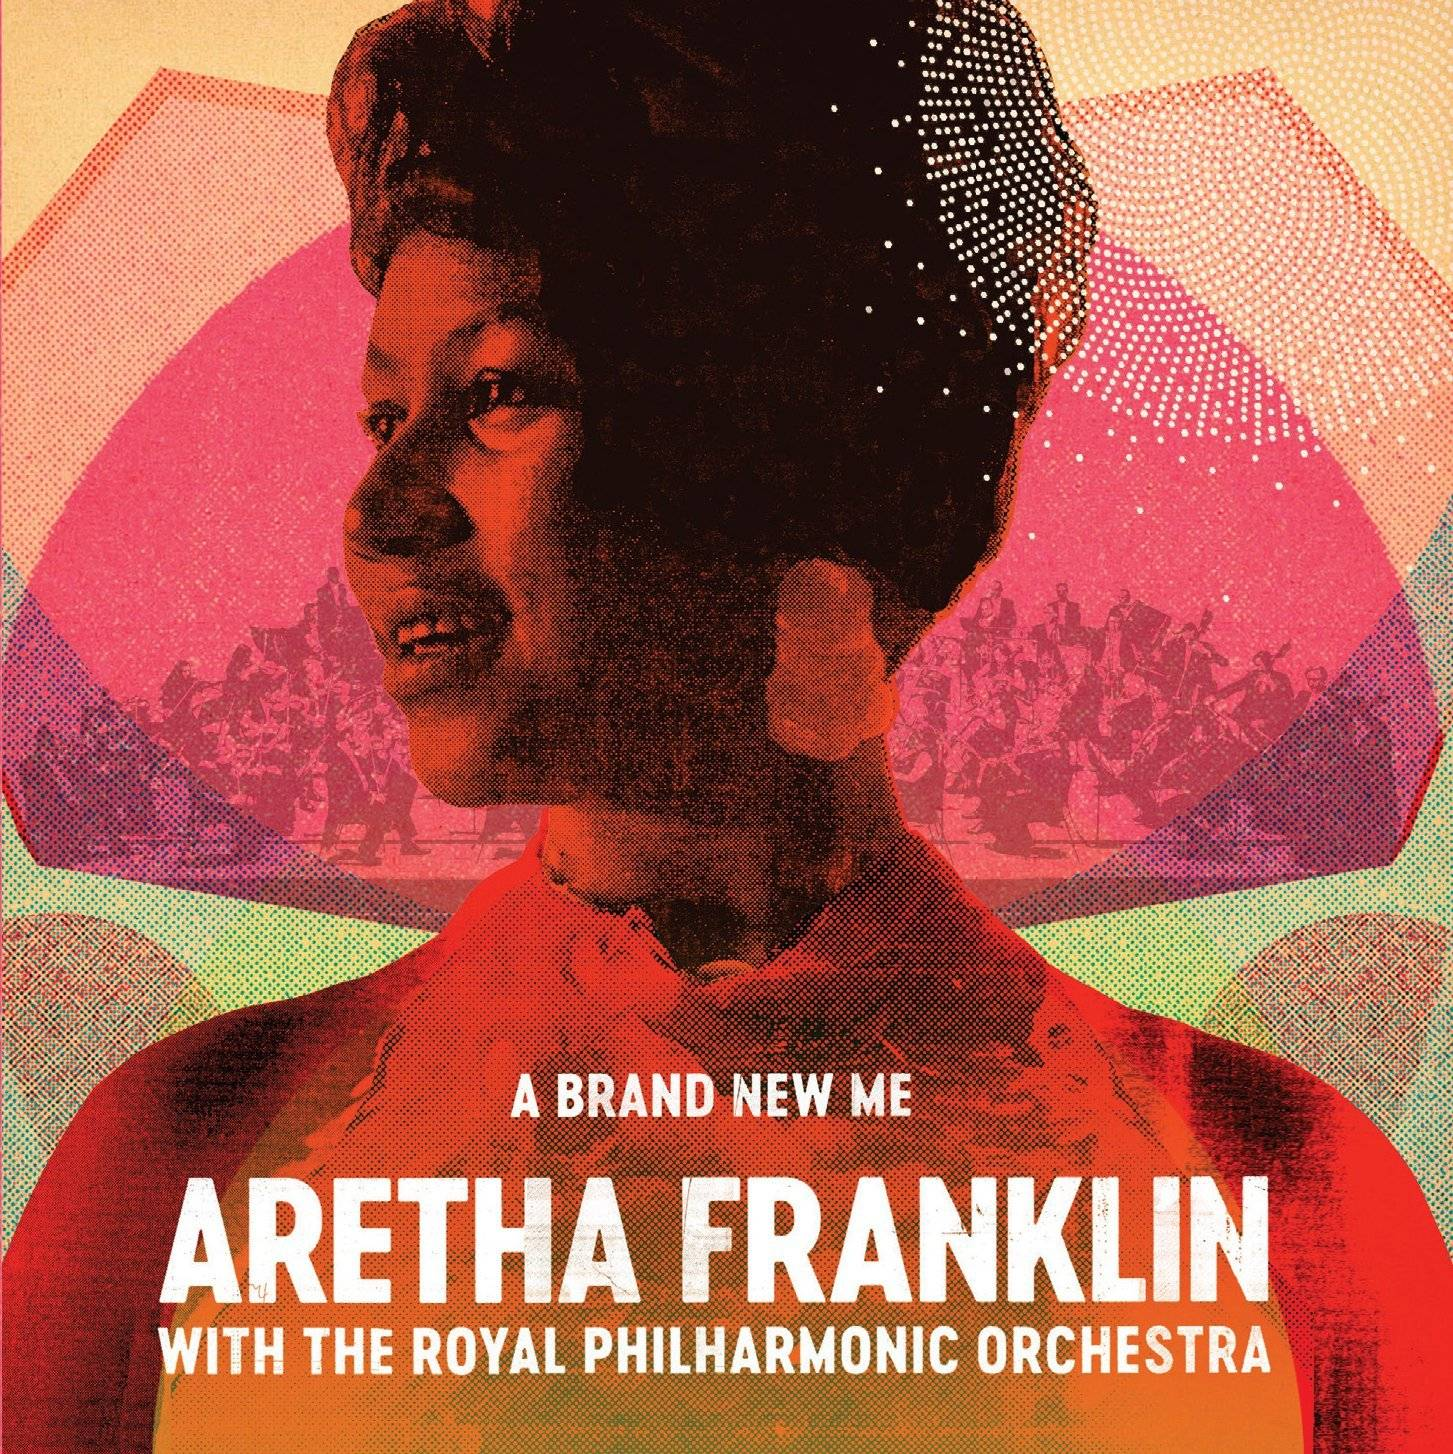 Aretha Franklin - A Brand New Me: Aretha Franklin (with The Royal Philharmonic Orchestra) (2017)